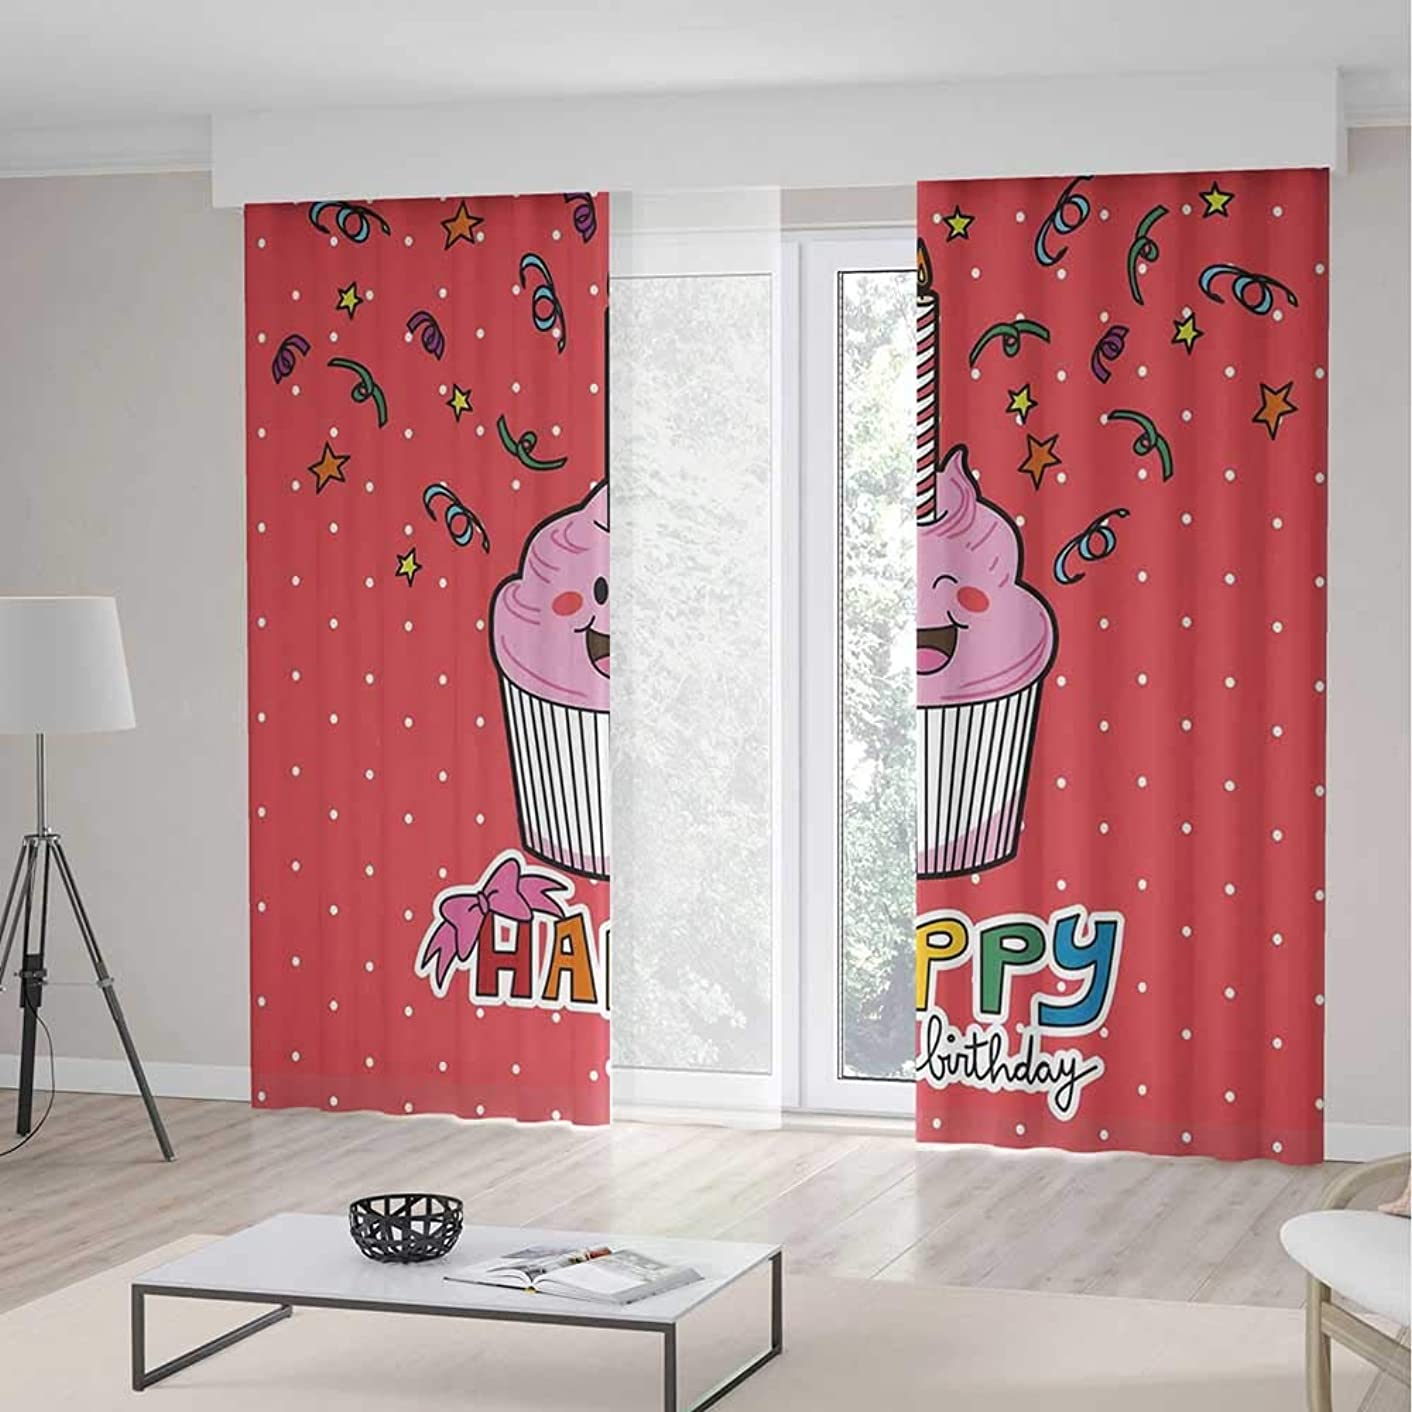 Bedroom Curtains,Birthday Decorations for Living Room,Pink Strawberry Cupcake with Candle Cute Face Confetti Bow Tie Dots,79Wx94L Inches